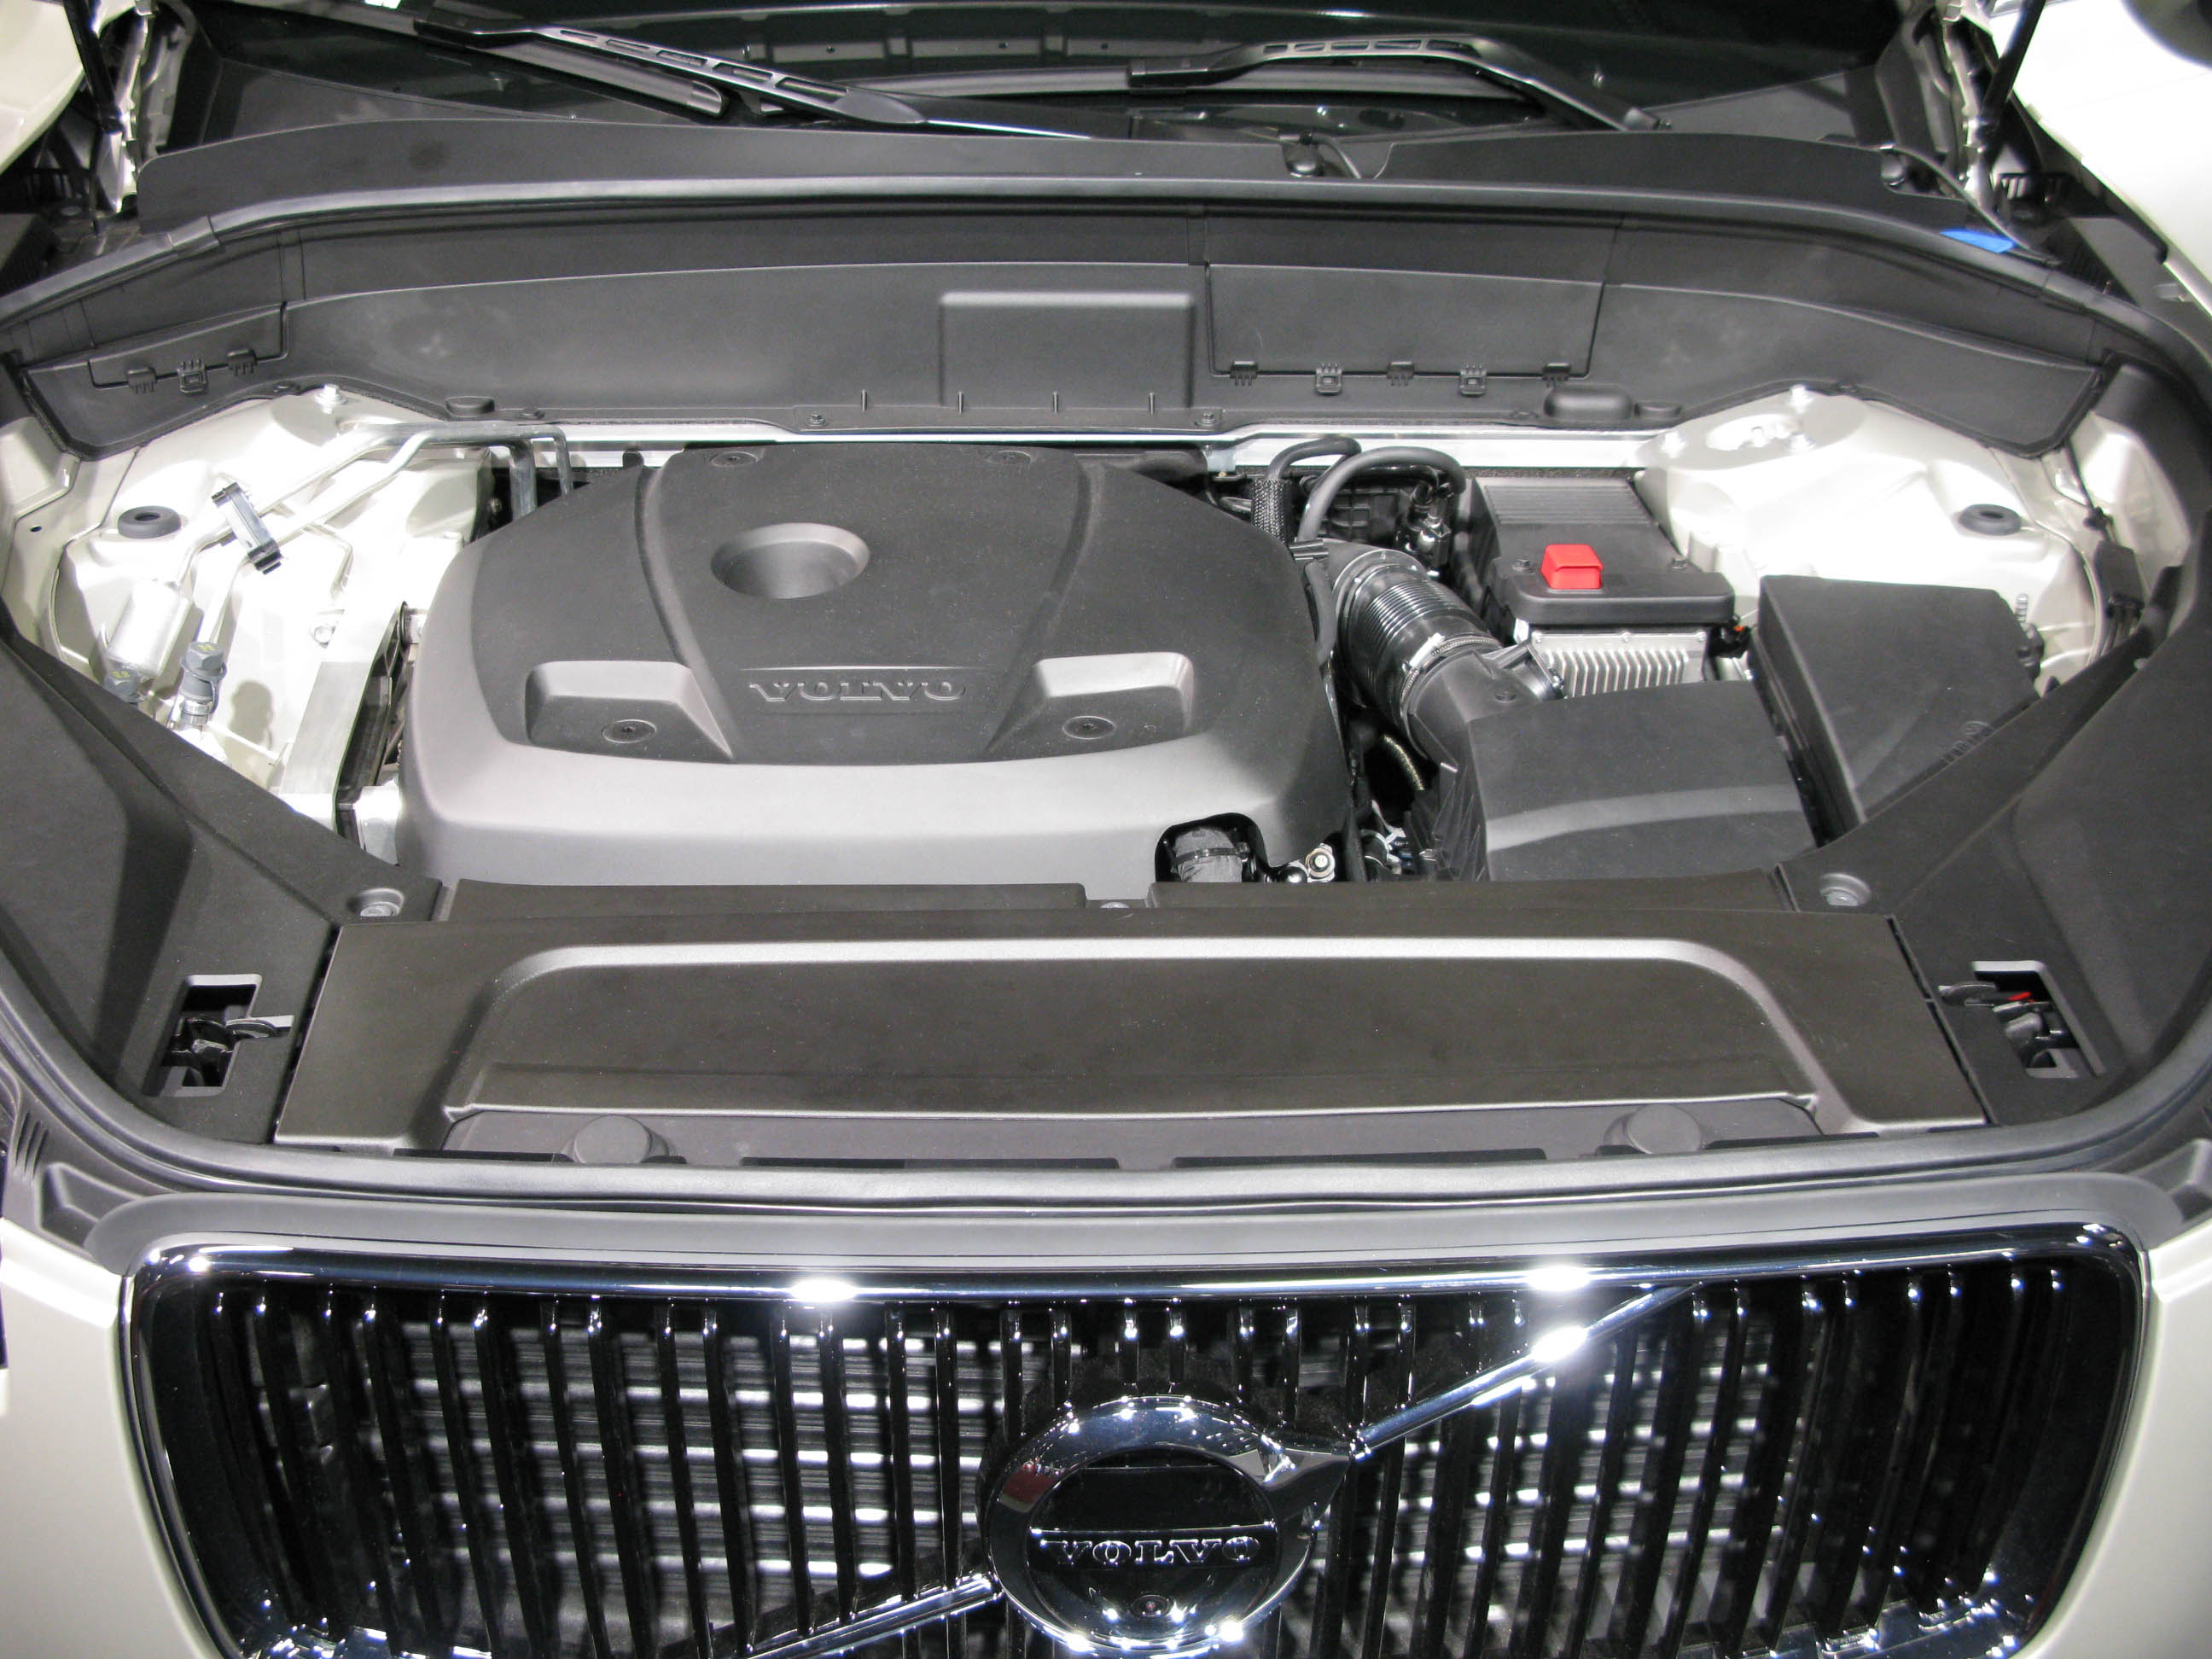 File Volvo Xc90 Ii T6 Engine Jpg